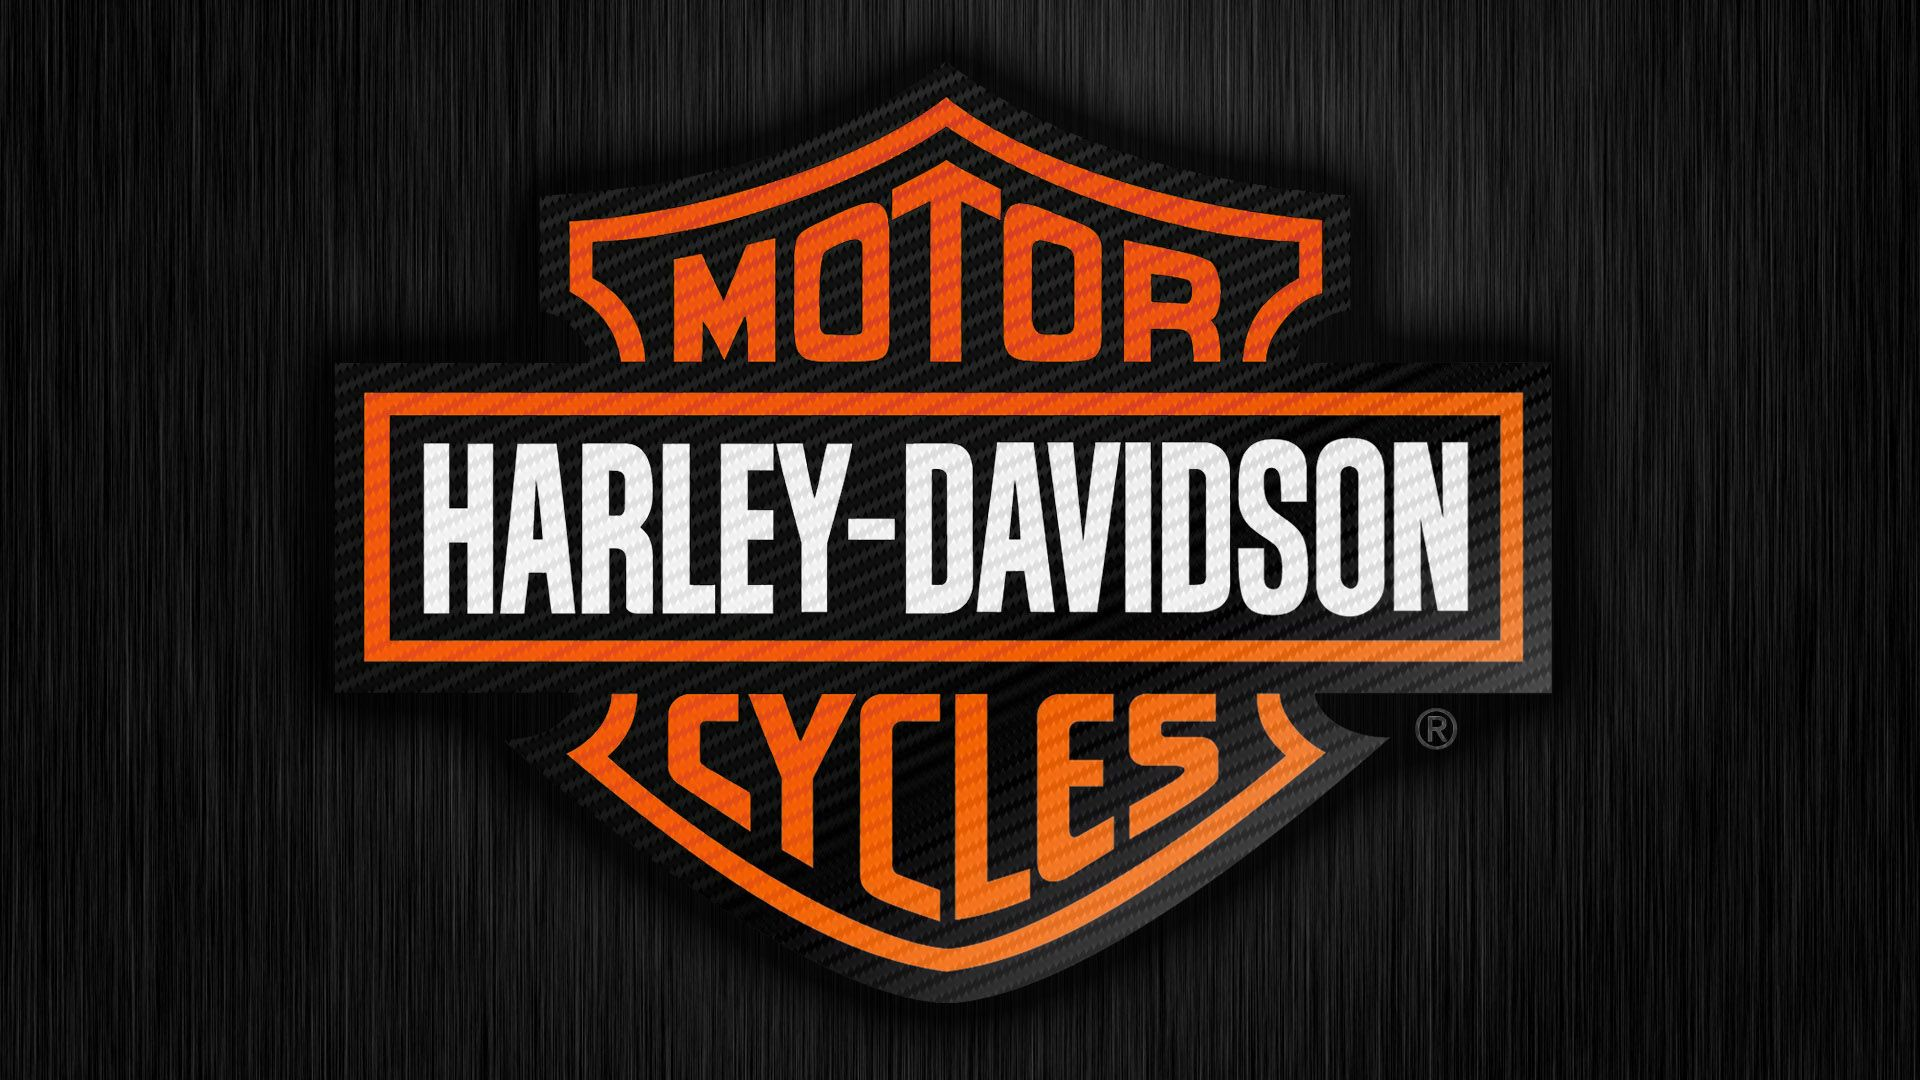 Images of Harley Davidson | 1920x1080